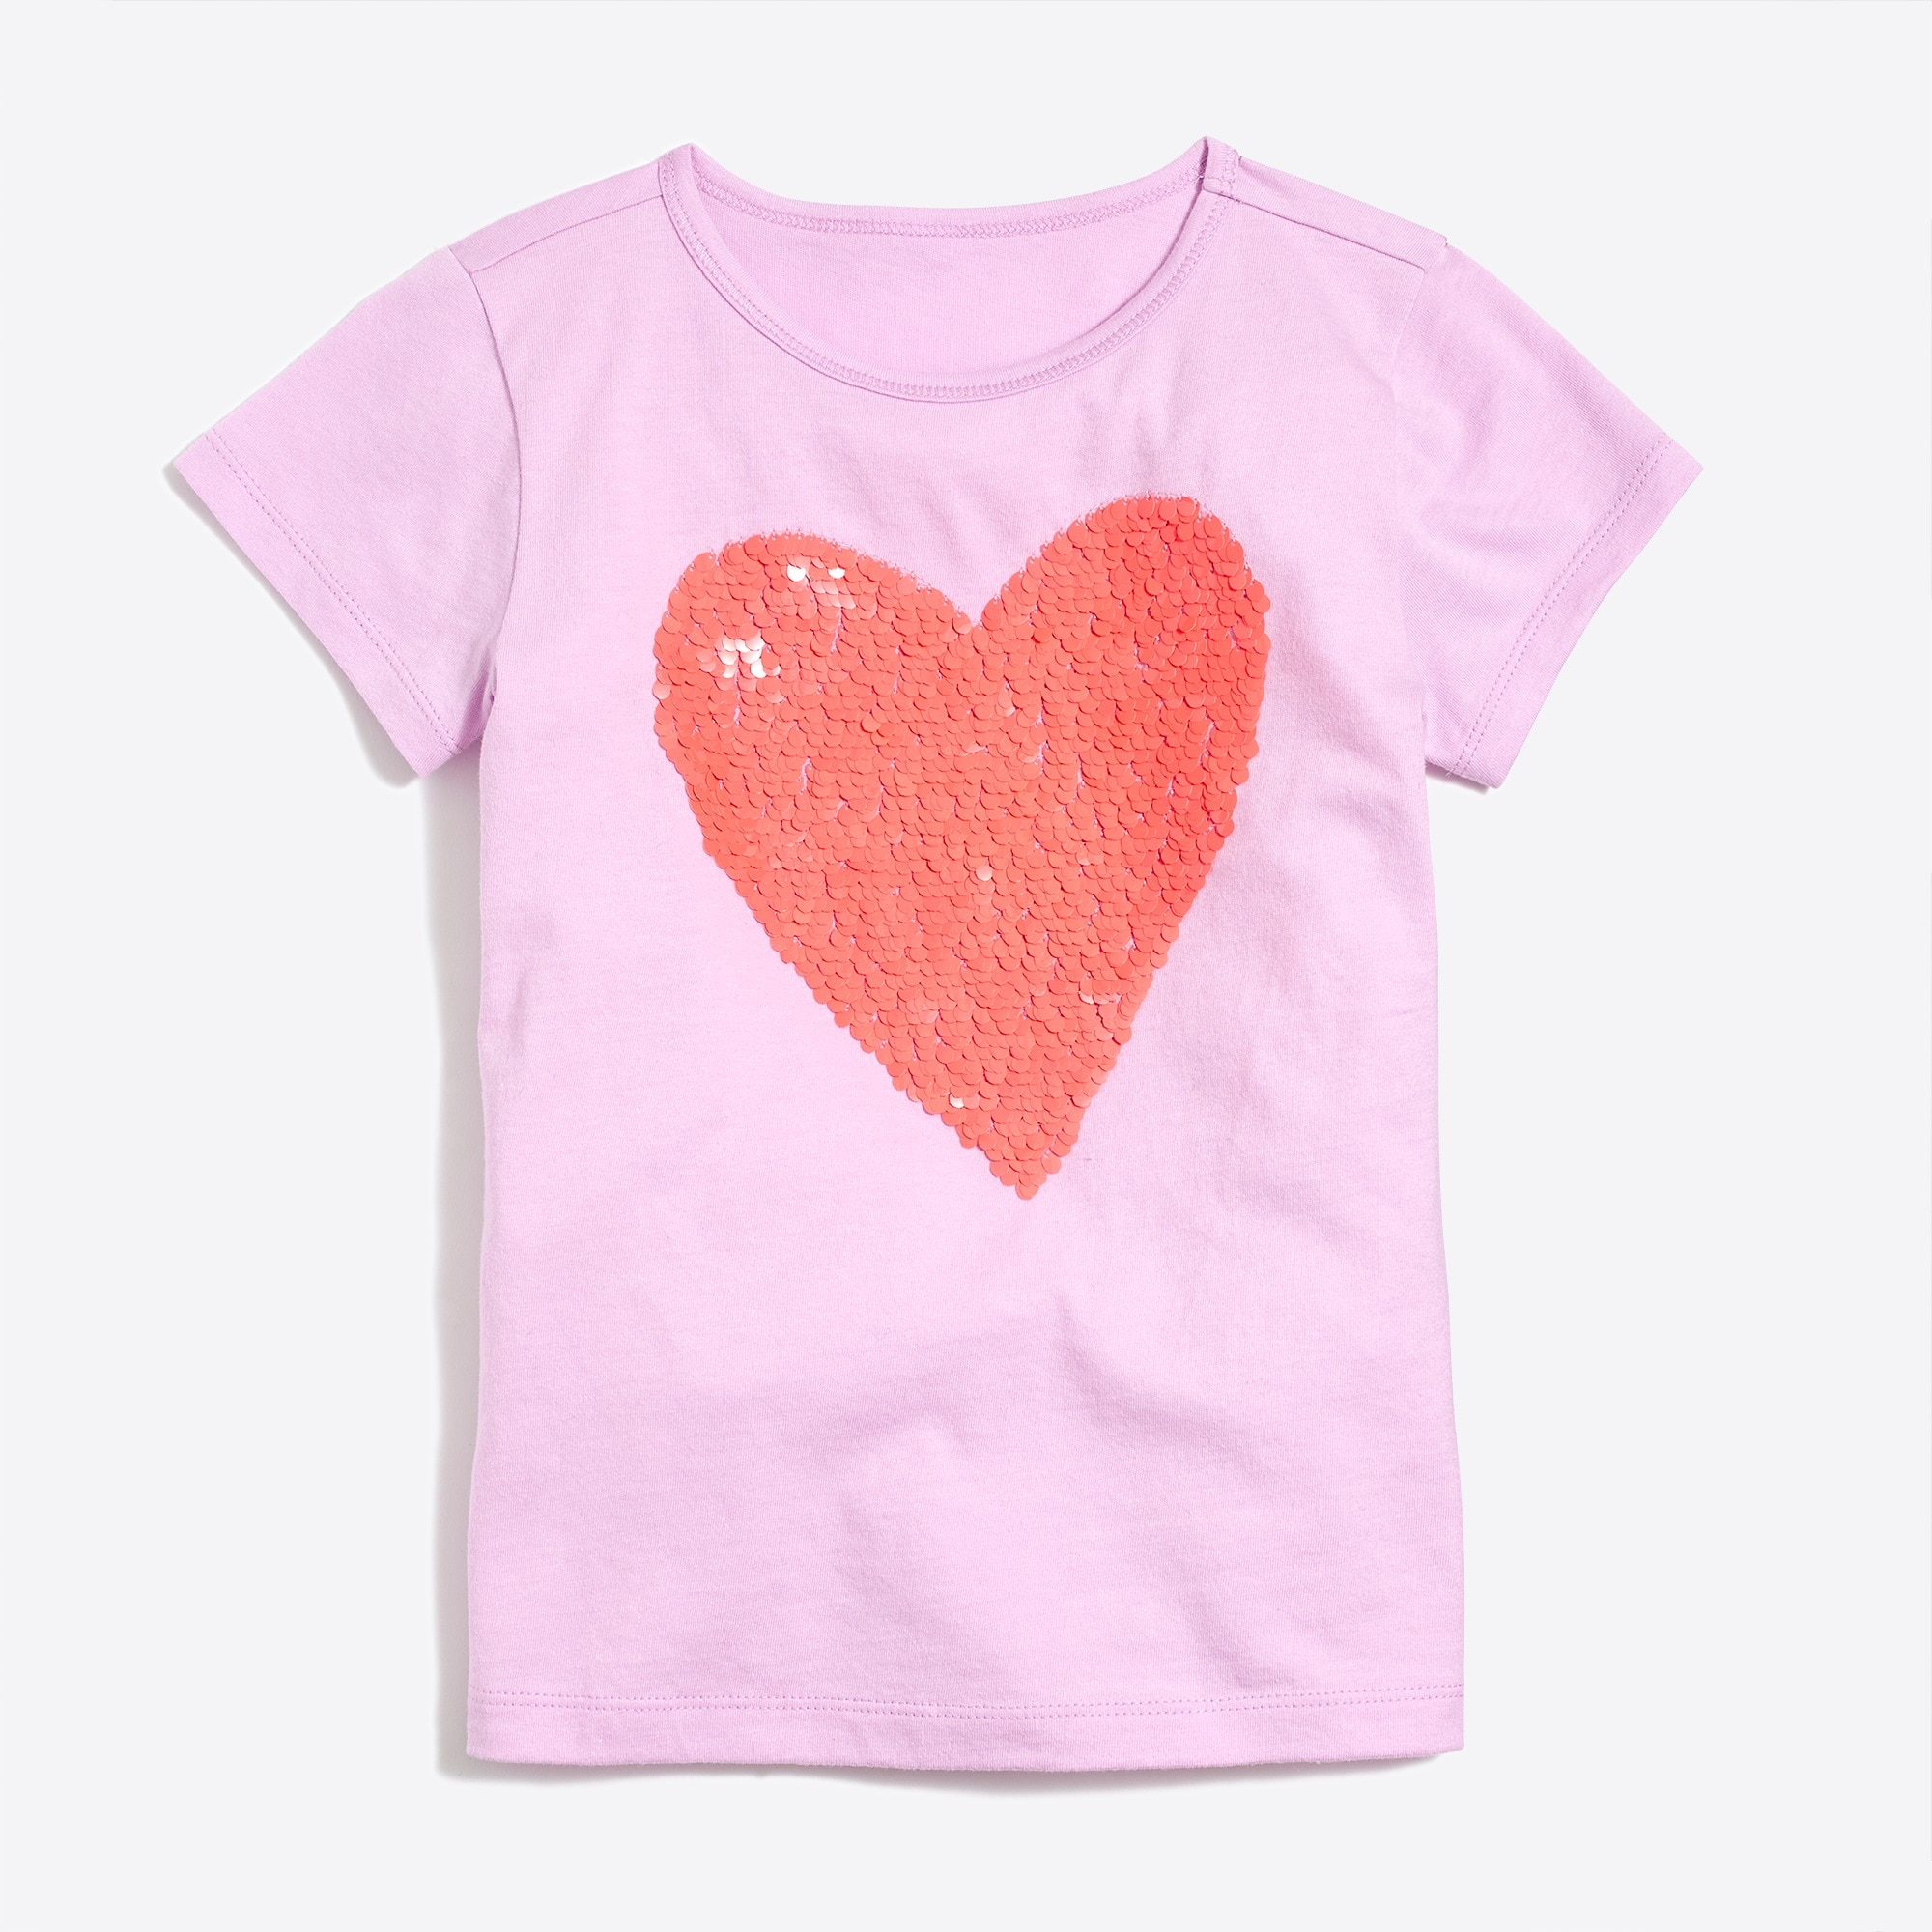 Image 1 for Girls' sequin heart graphic T-shirt